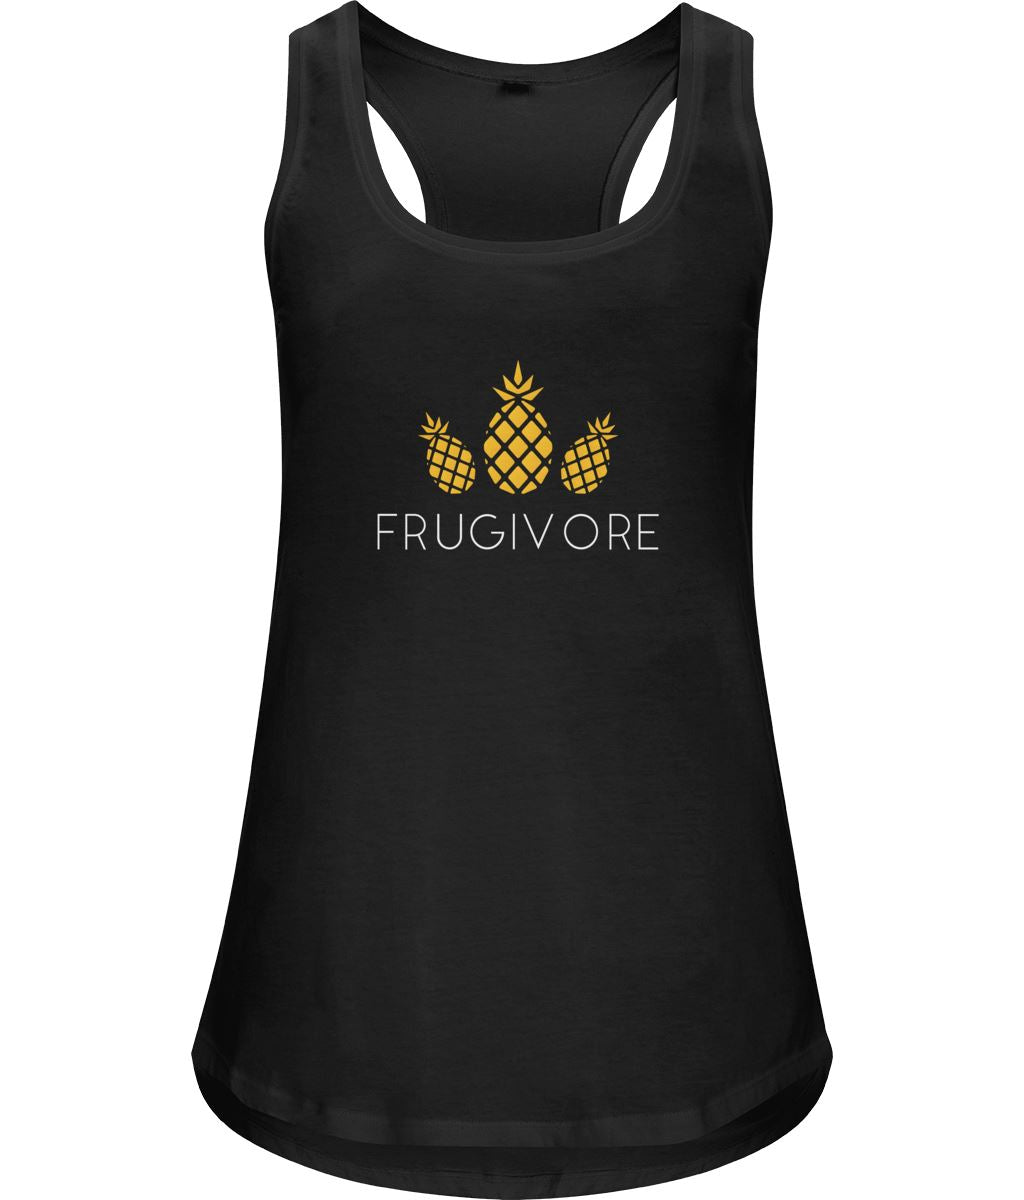 """Frugivore"" Women's Vegan Racerback Vest Clothing Vegan Original Small Black"